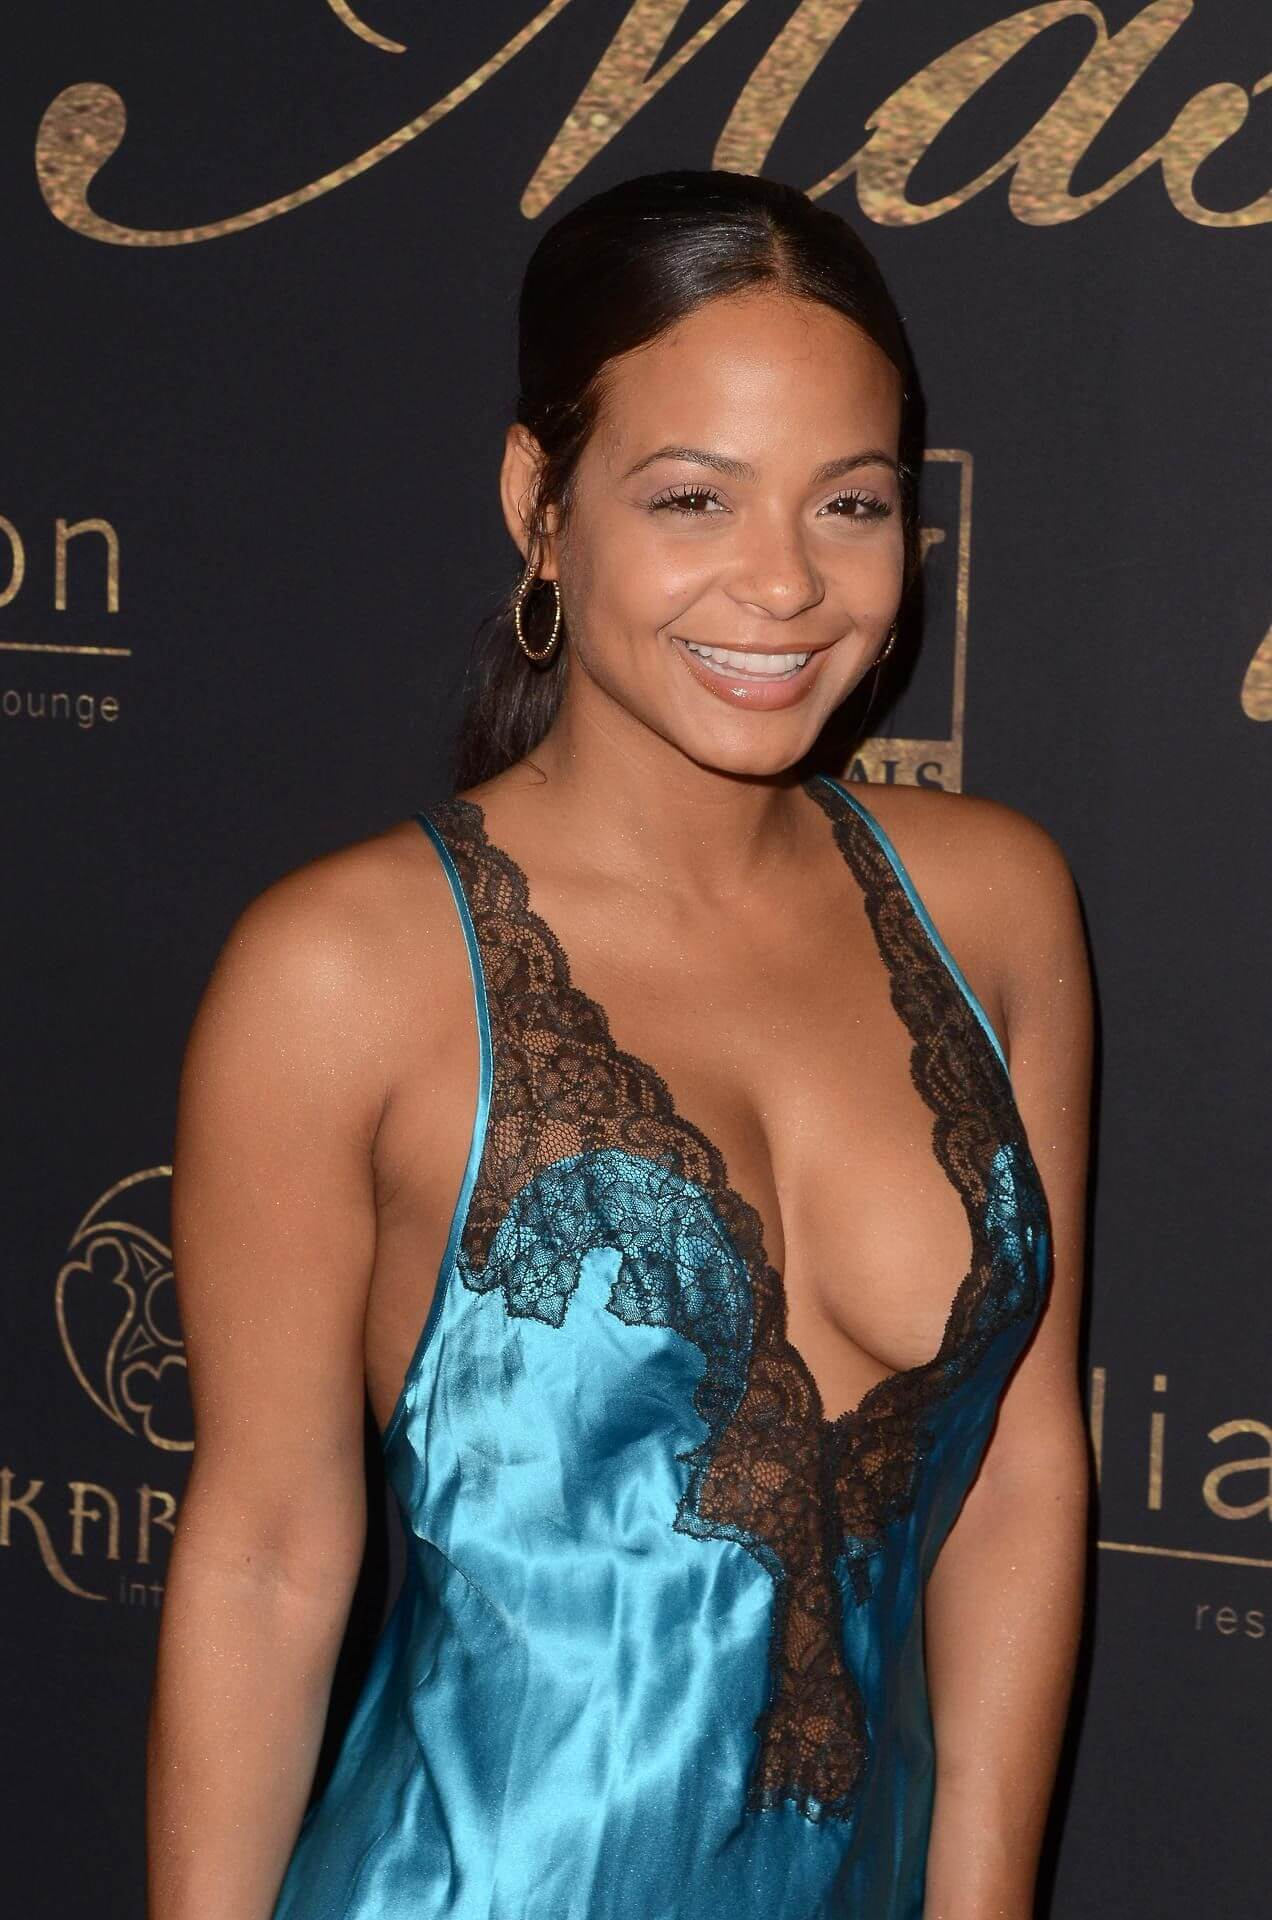 CHRISTINA MILIAN SHOWS OFF HER BABY BUMP AND TALKS ABOUT